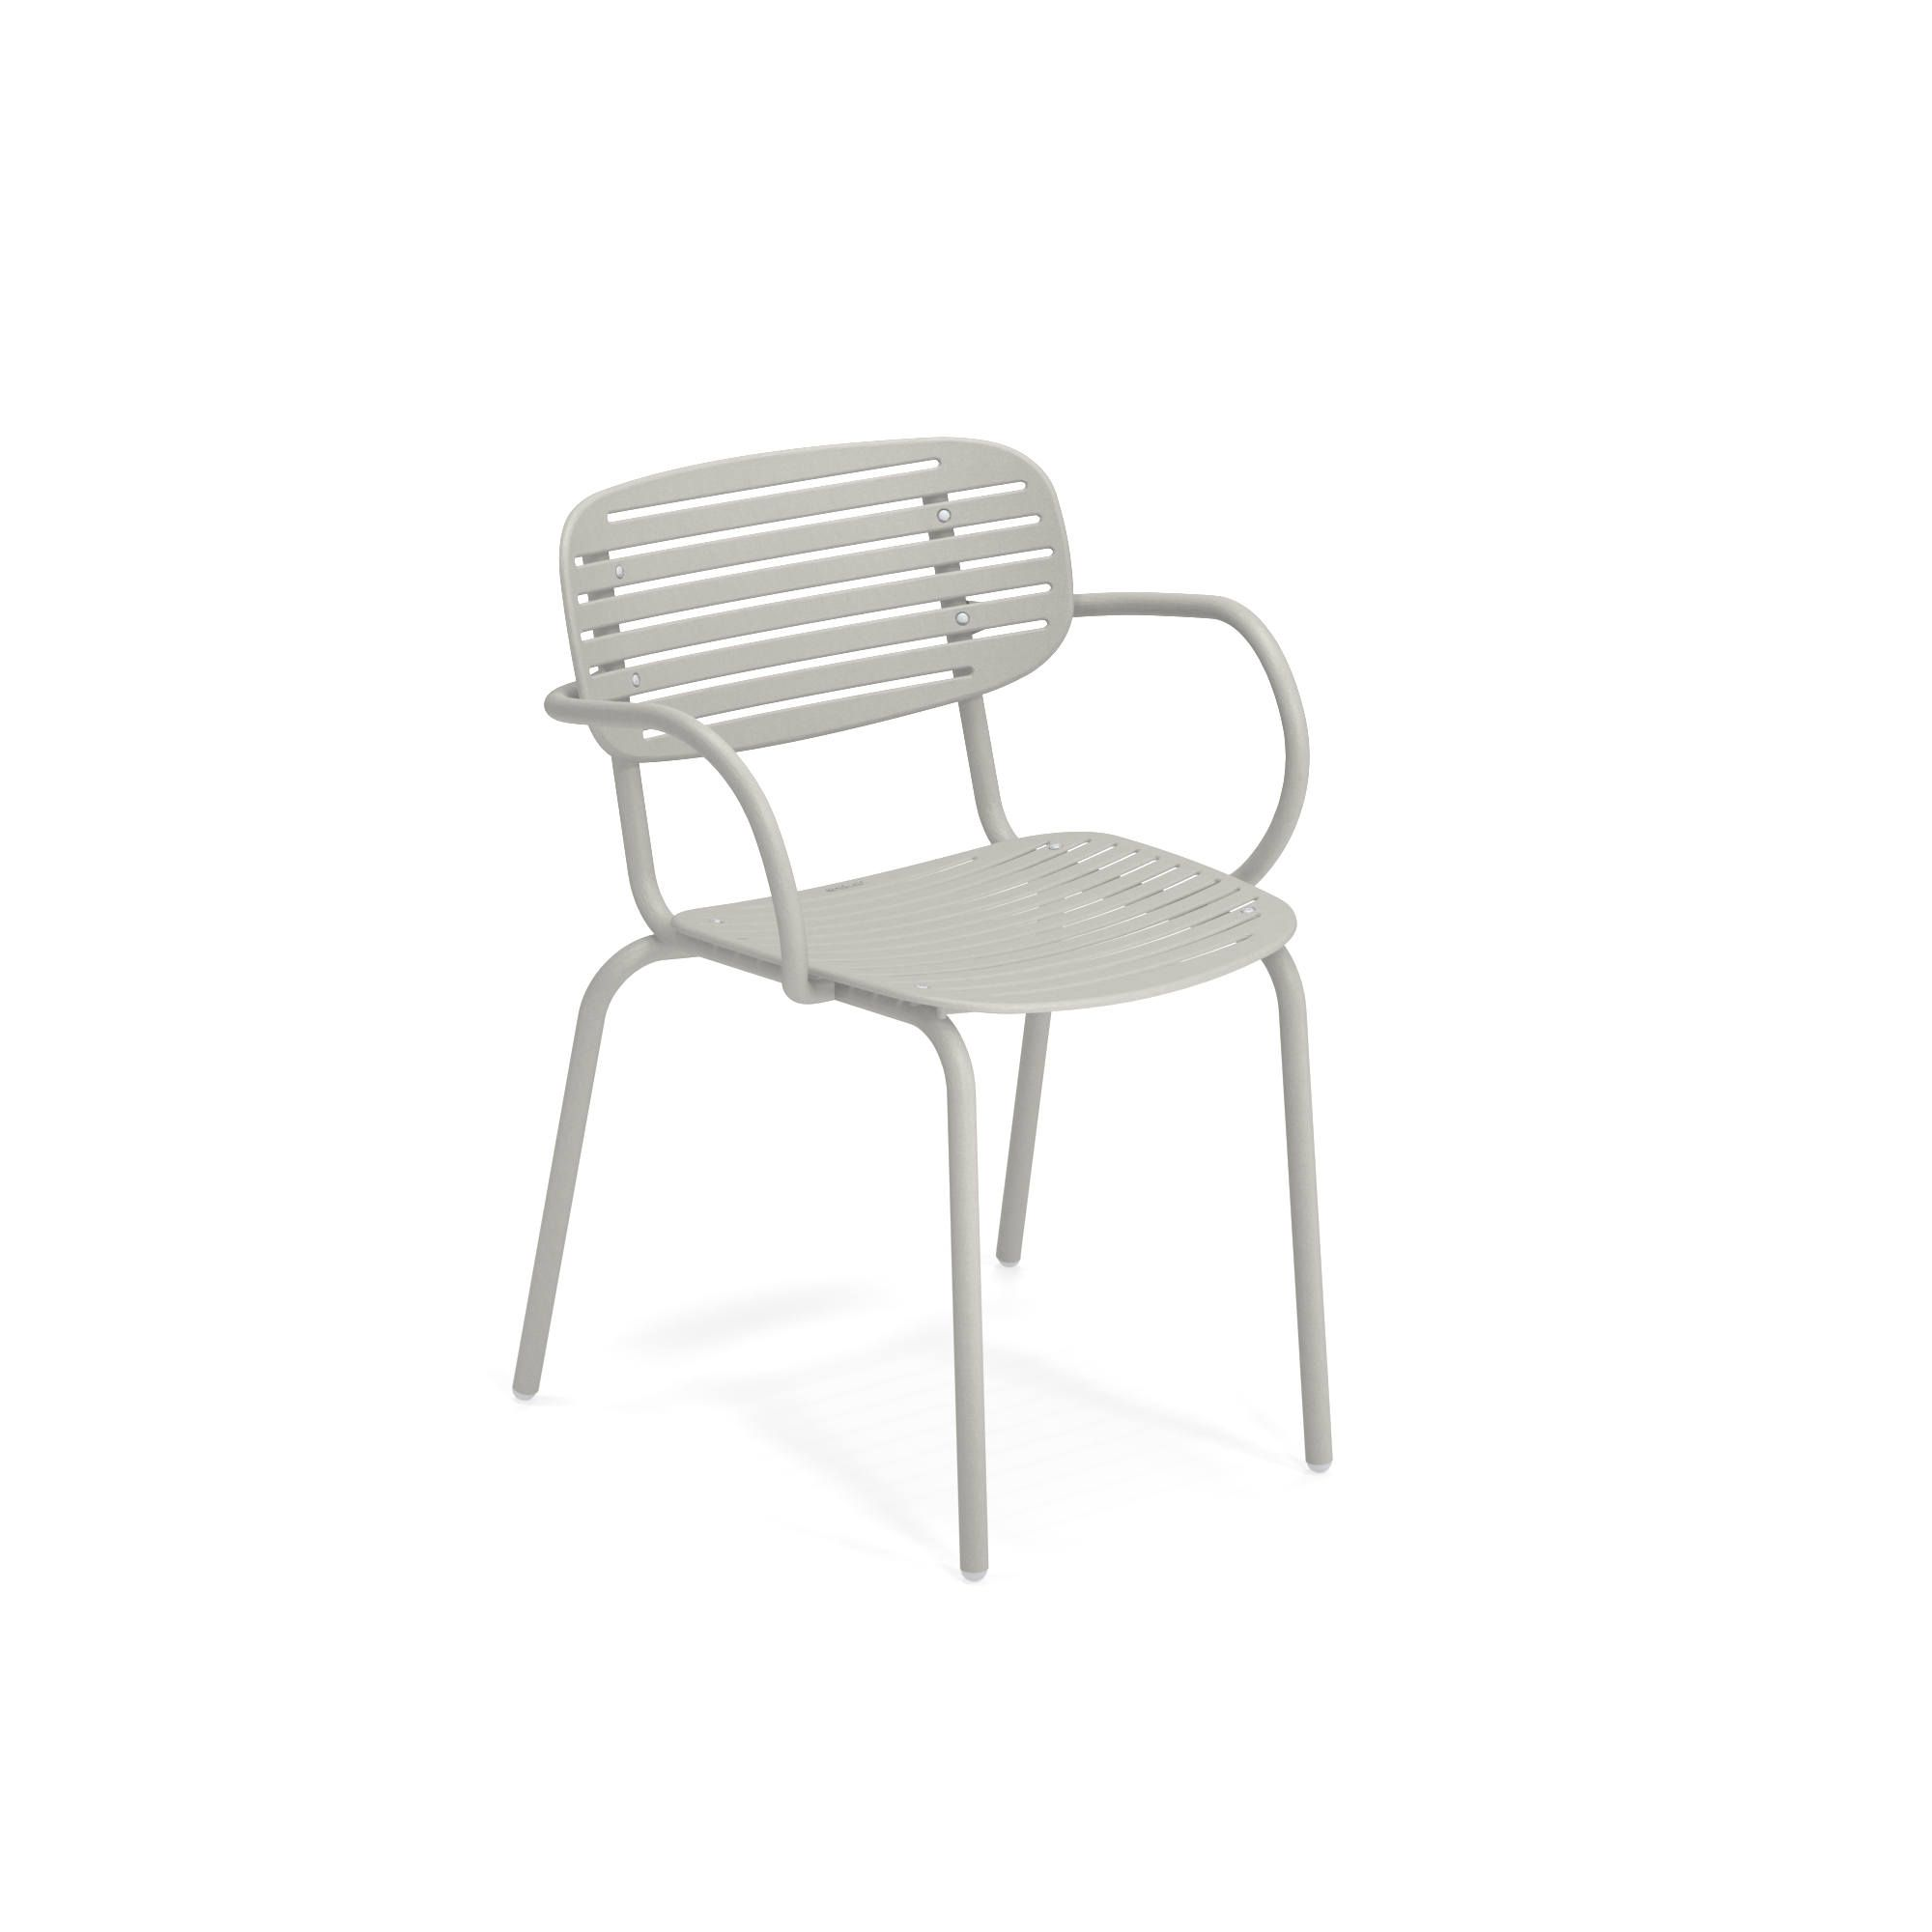 emuamericas, llc 640-73 chair, armchair, stacking, outdoor